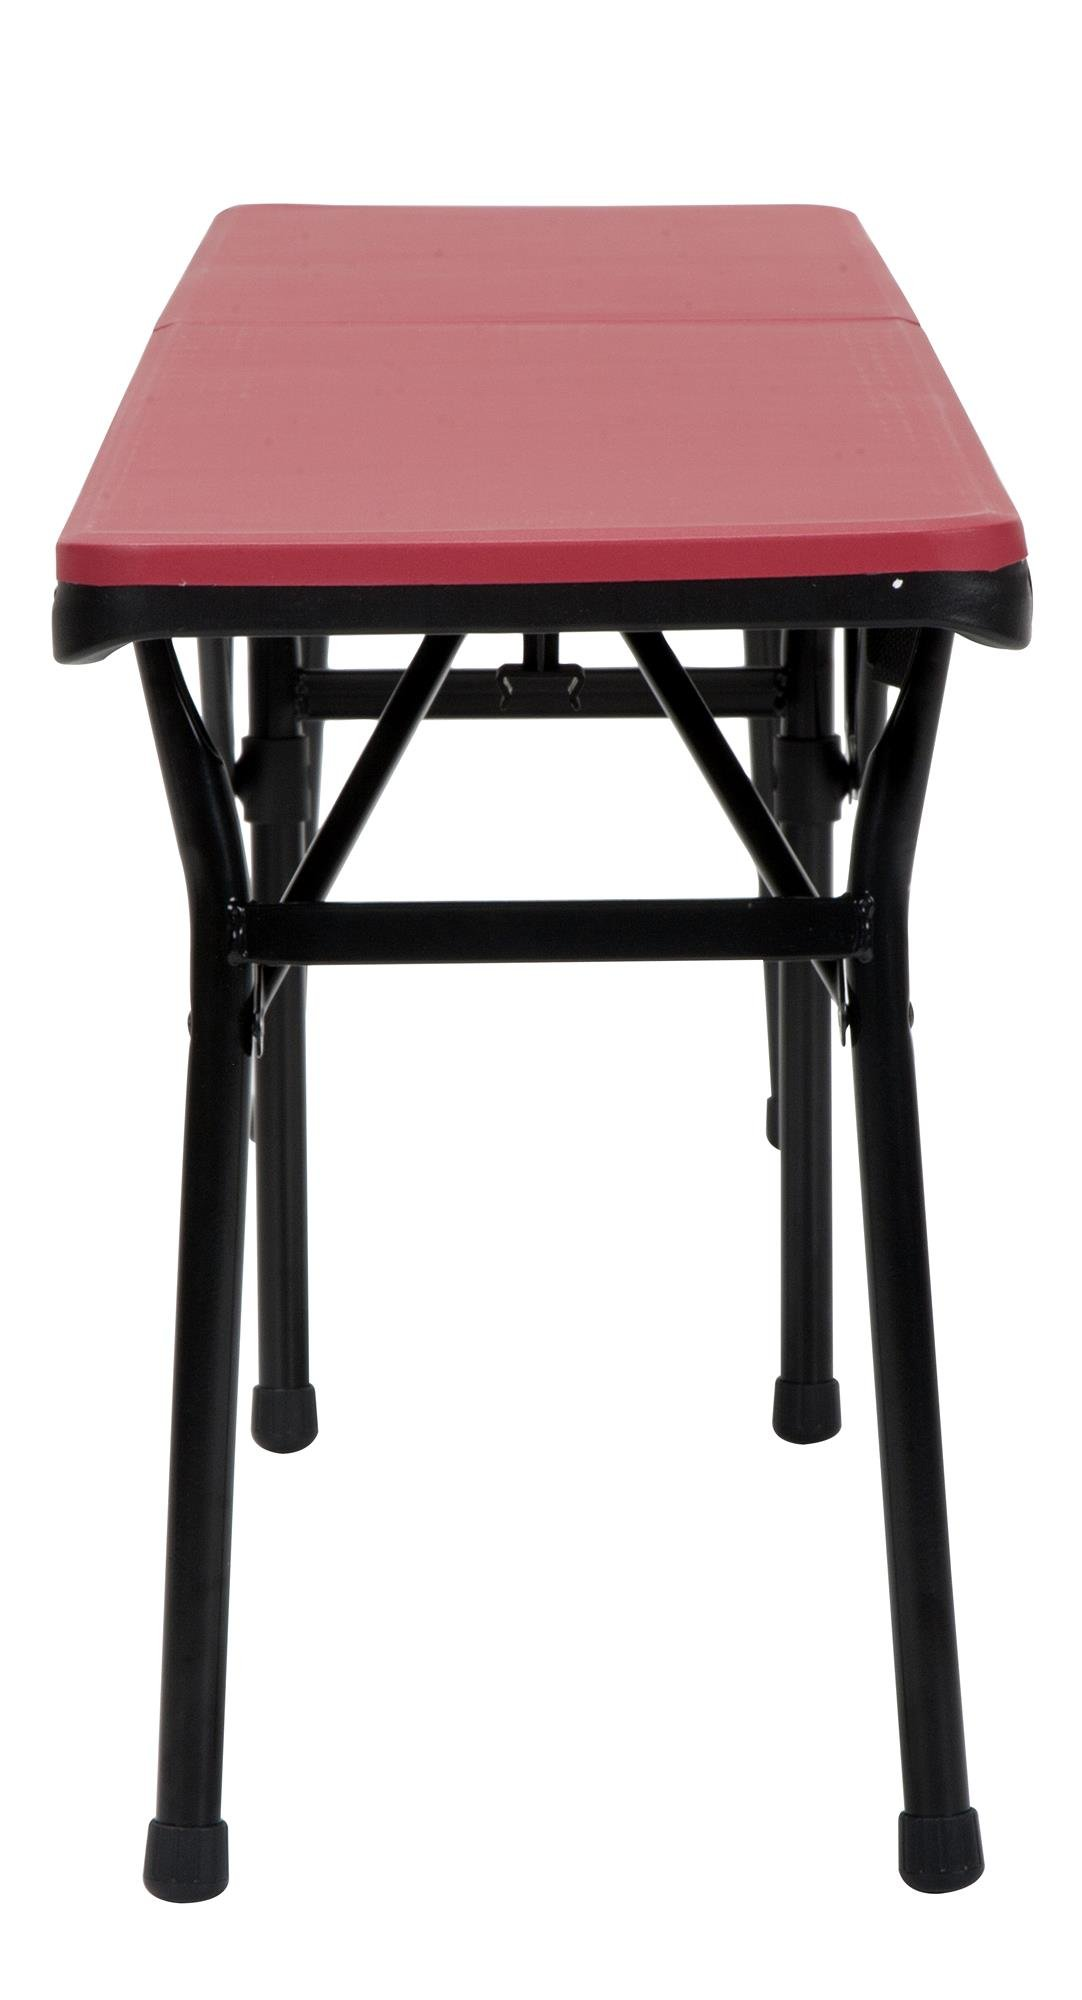 COSCO 6 ft. Indoor Outdoor Center Fold Tailgate Bench with Carrying Handle, Red Bench Top, Black Frame, 2-pack by Cosco Outdoor Living (Image #10)